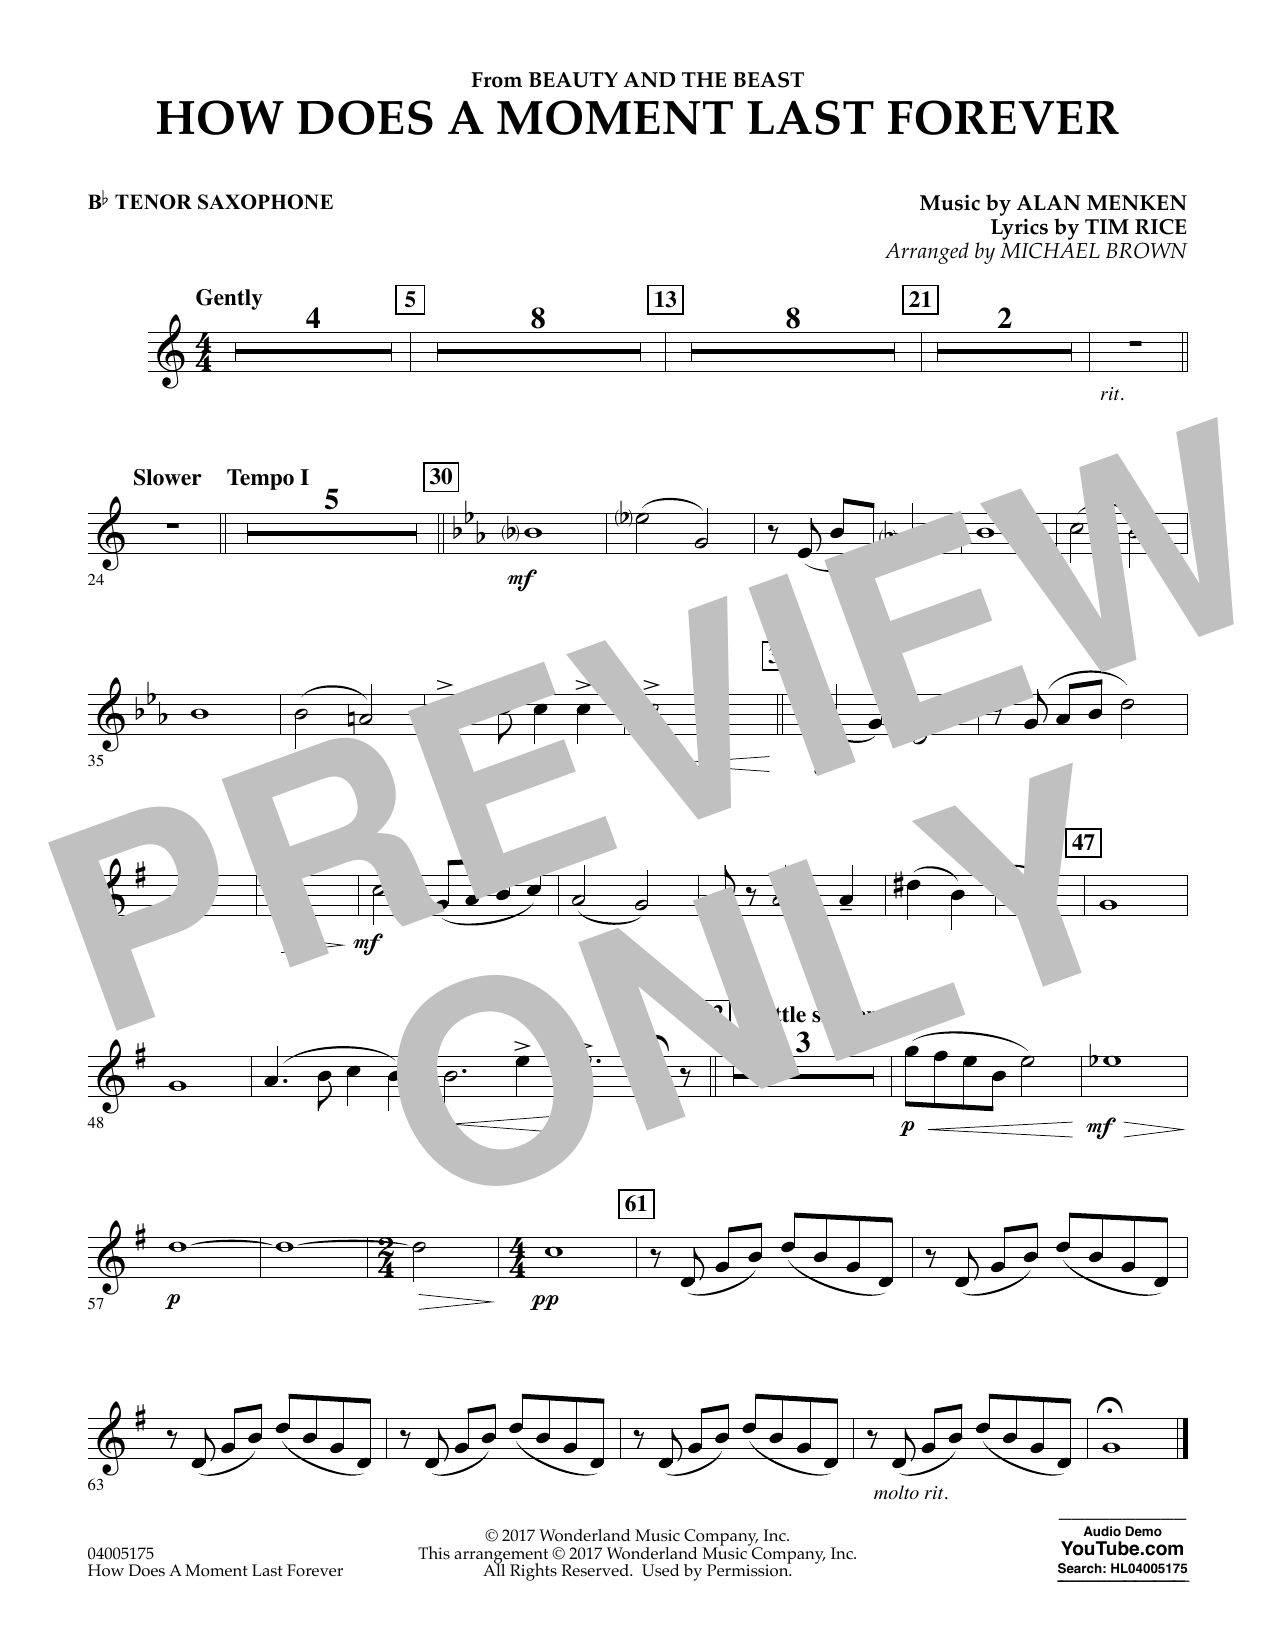 Michael Brown How Does a Moment Last Forever (from Beauty and the Beast) - Bb Tenor Saxophone sheet music notes and chords. Download Printable PDF.